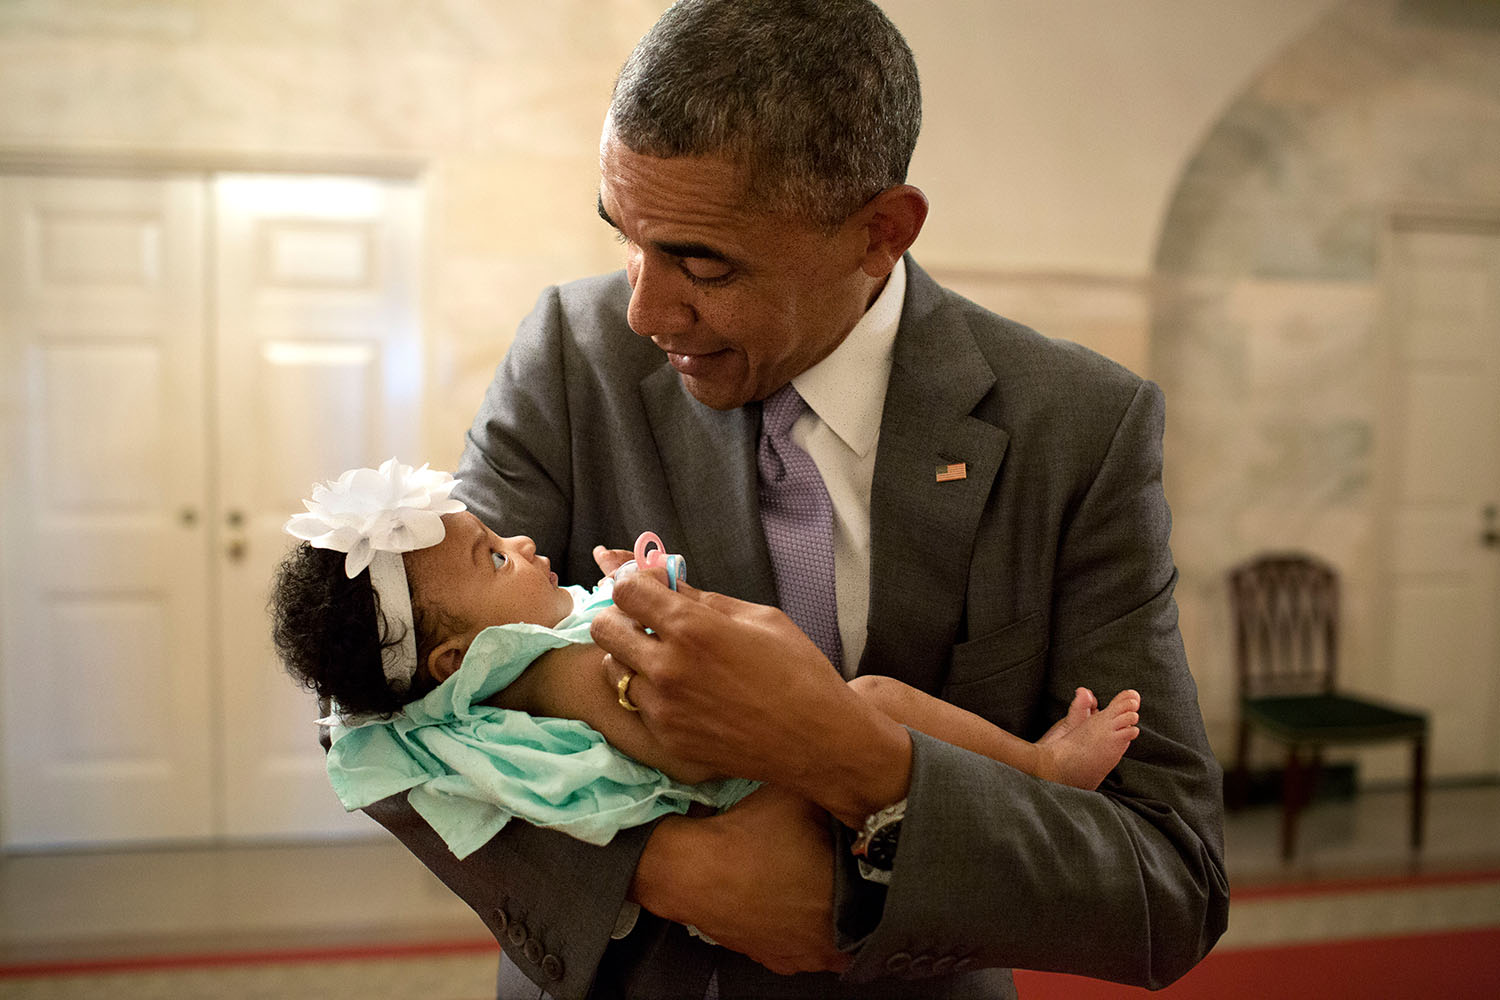 Apos;UNBELIEVABLE '! If Barack Obama has ONE regret from his Barack obama early photos